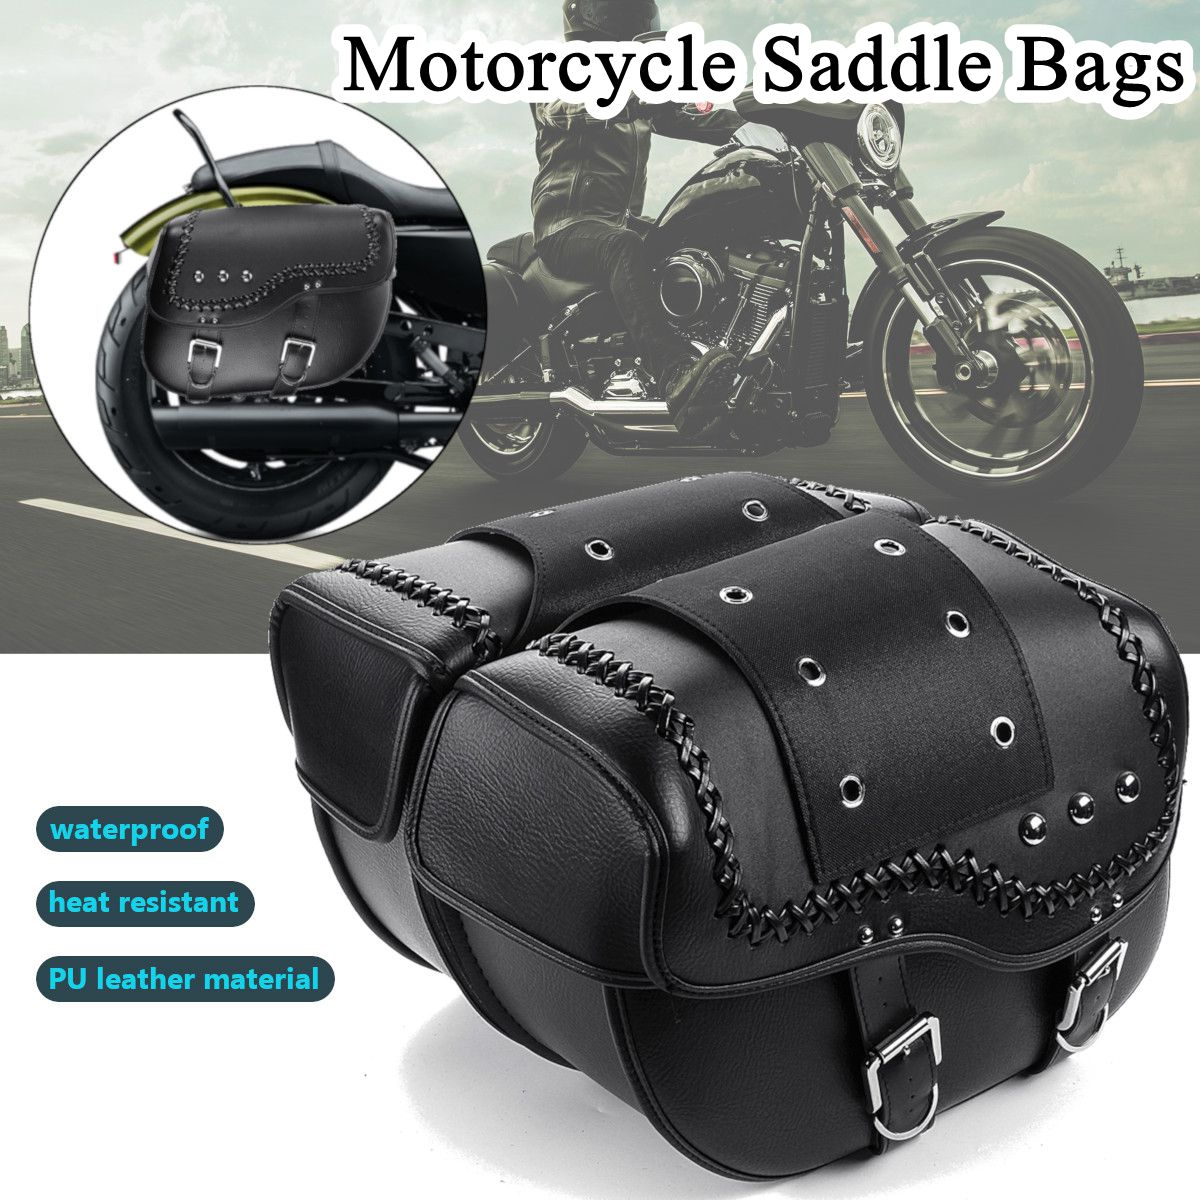 2pcs leather bags motorcycle bags saddlebags motorcycle saddle bag motorcycle